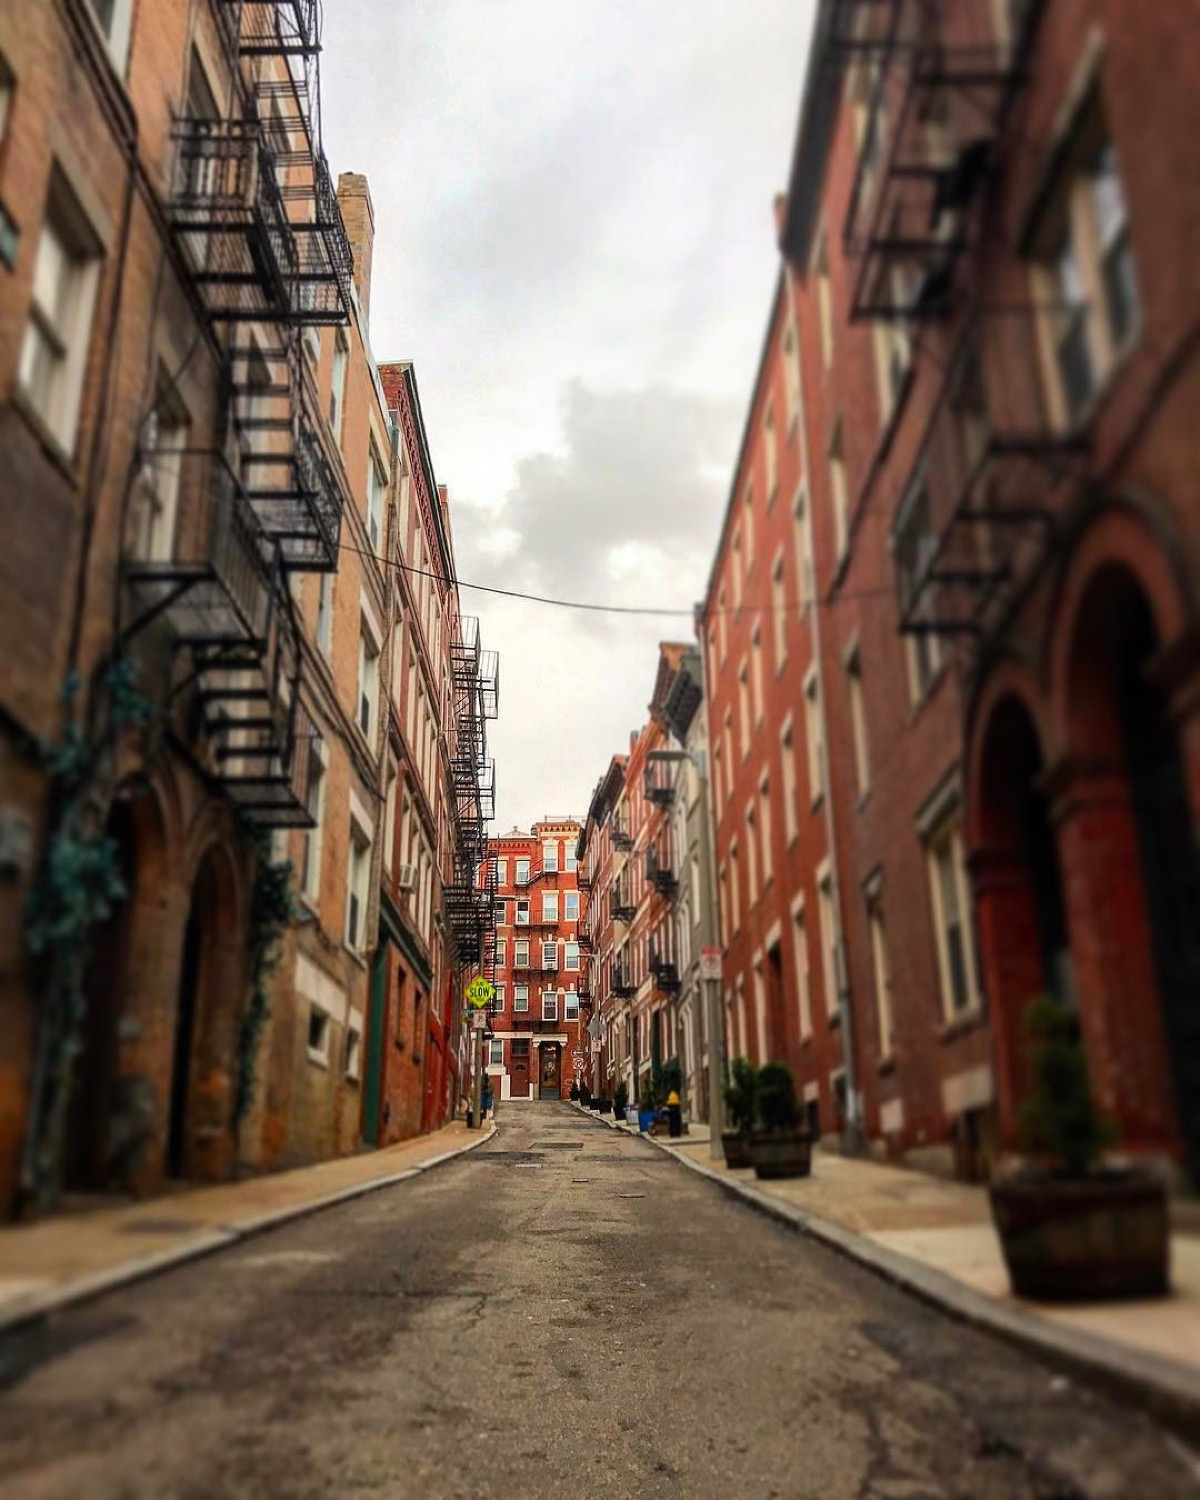 PLACE: North End, Boston / MILES FROM CINCY: 864 / ABOUT: Boston's North End neighborhood has the distinction of being the oldest place in a city full of very old places. People have continuously inhabited the area since it was settled in the 1630s. / Image courtesy of Instagram user @pixelsrule // Published: 5.14.17